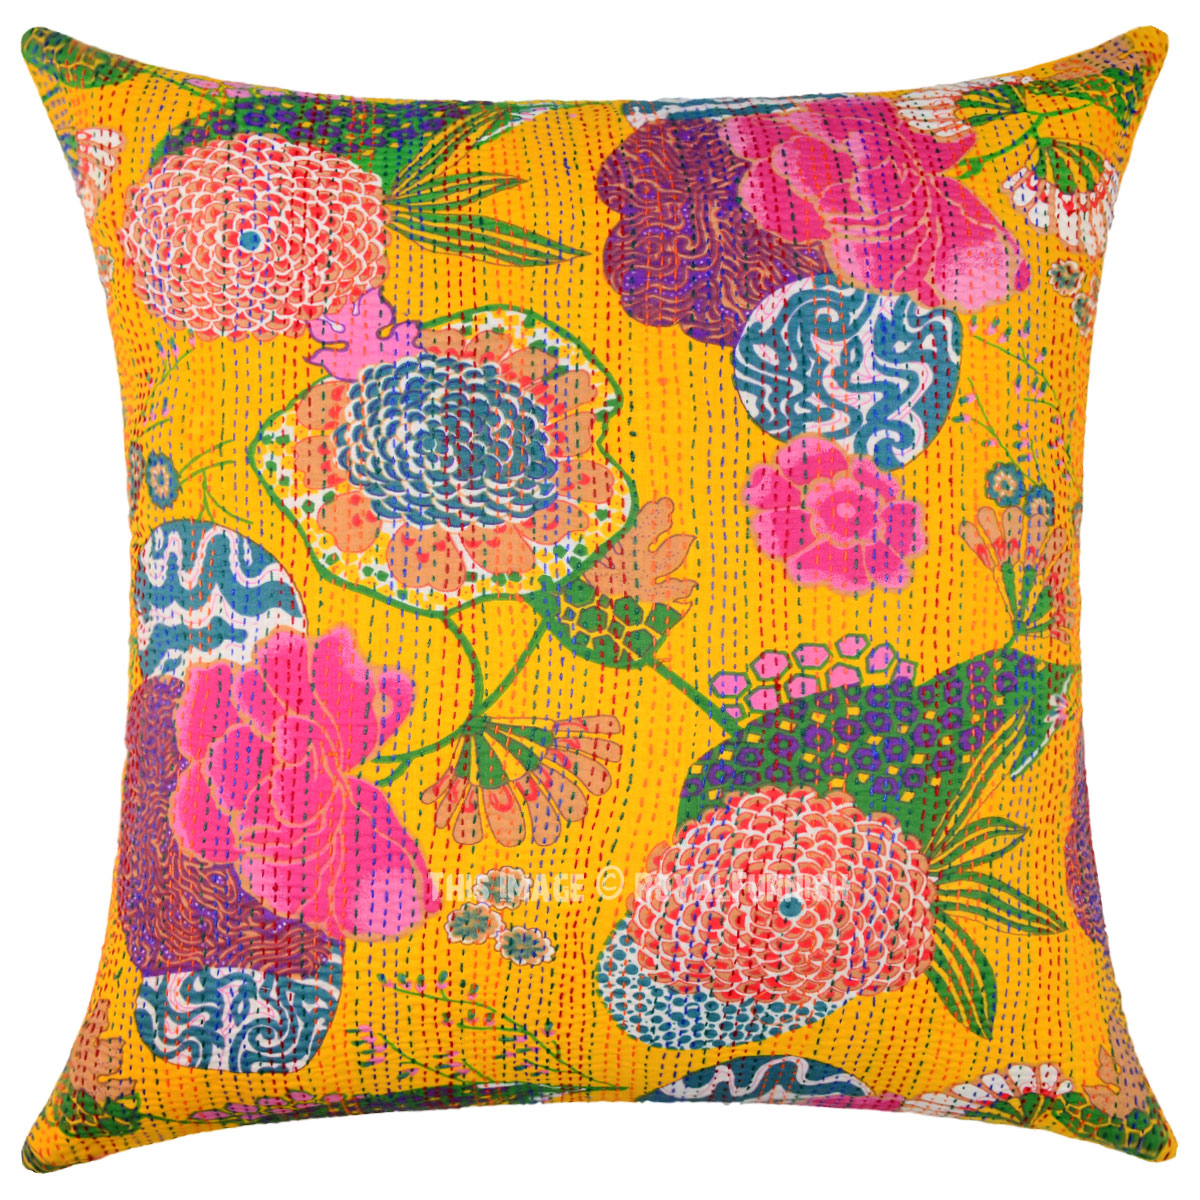 Yellow Decorative Tropical Kantha Square Throw Pillow. Kitchen Sink 38 X 22. Best Gauge For Stainless Steel Kitchen Sinks. Kitchen Sink Mesh Strainer. Hammered Kitchen Sink. Kitchen Sink Drain Parts. Undermount Kitchen Sinks Stainless Steel. Kitchen Sink Recommendations. Plug For Kitchen Sink Hole